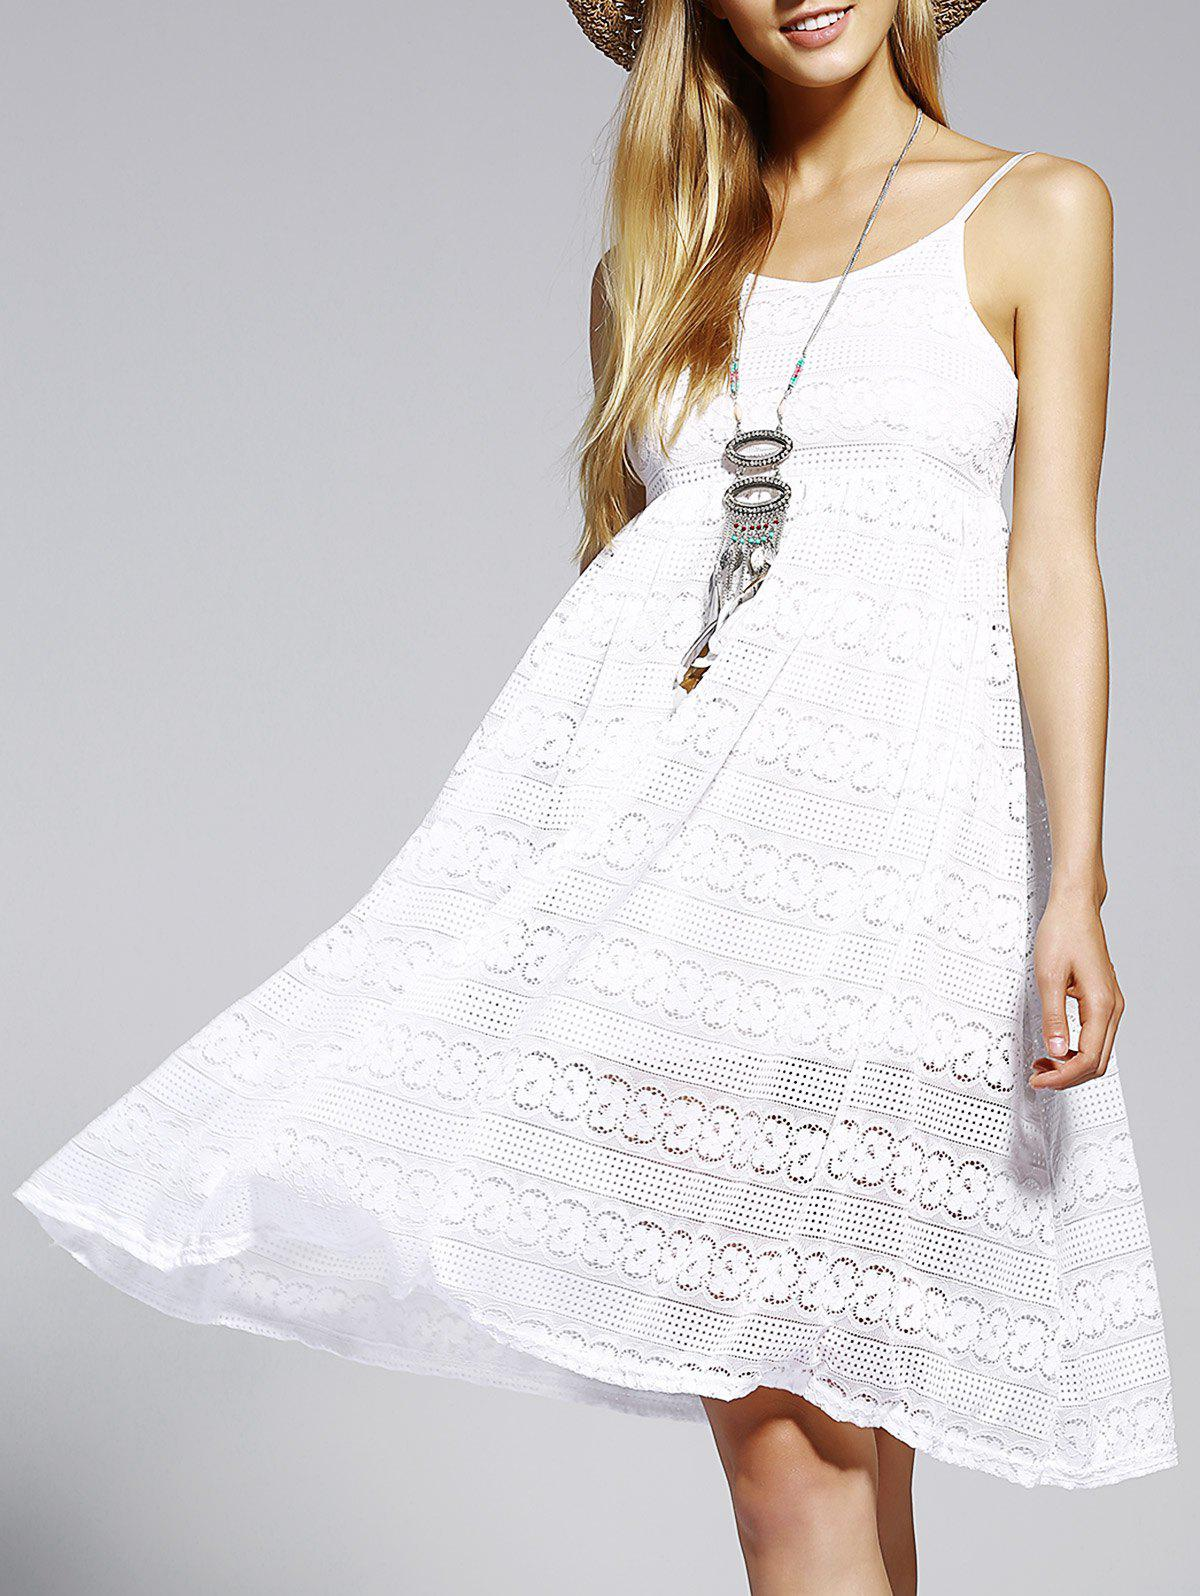 Trendy Spaghetti Strap Backless Pure Color Women's Dress - WHITE ONE SIZE(FIT SIZE XS TO M)